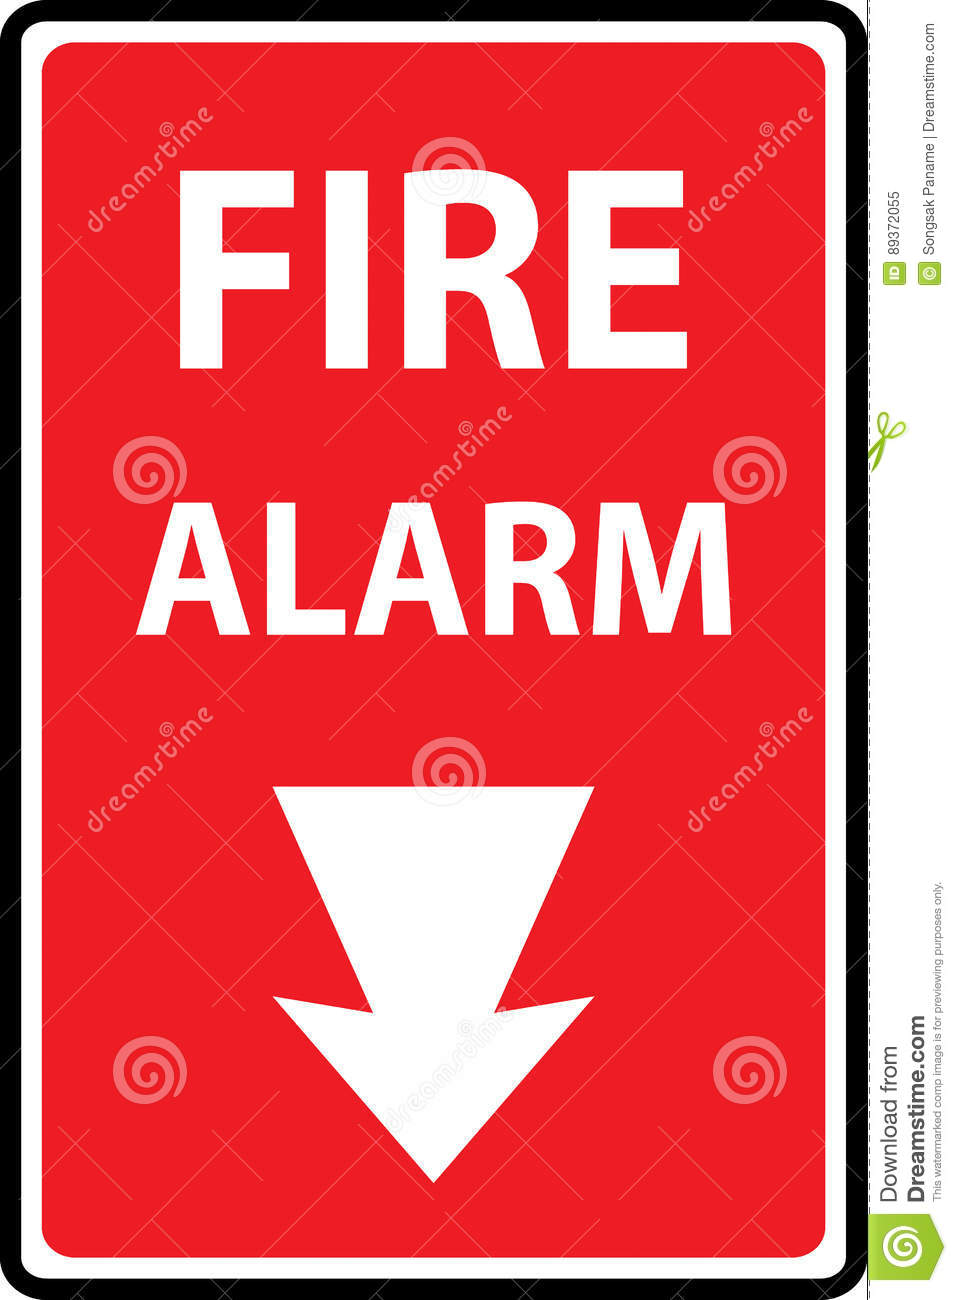 Fire Alarm Emergency Signs Stock Vector Illustration Of Button